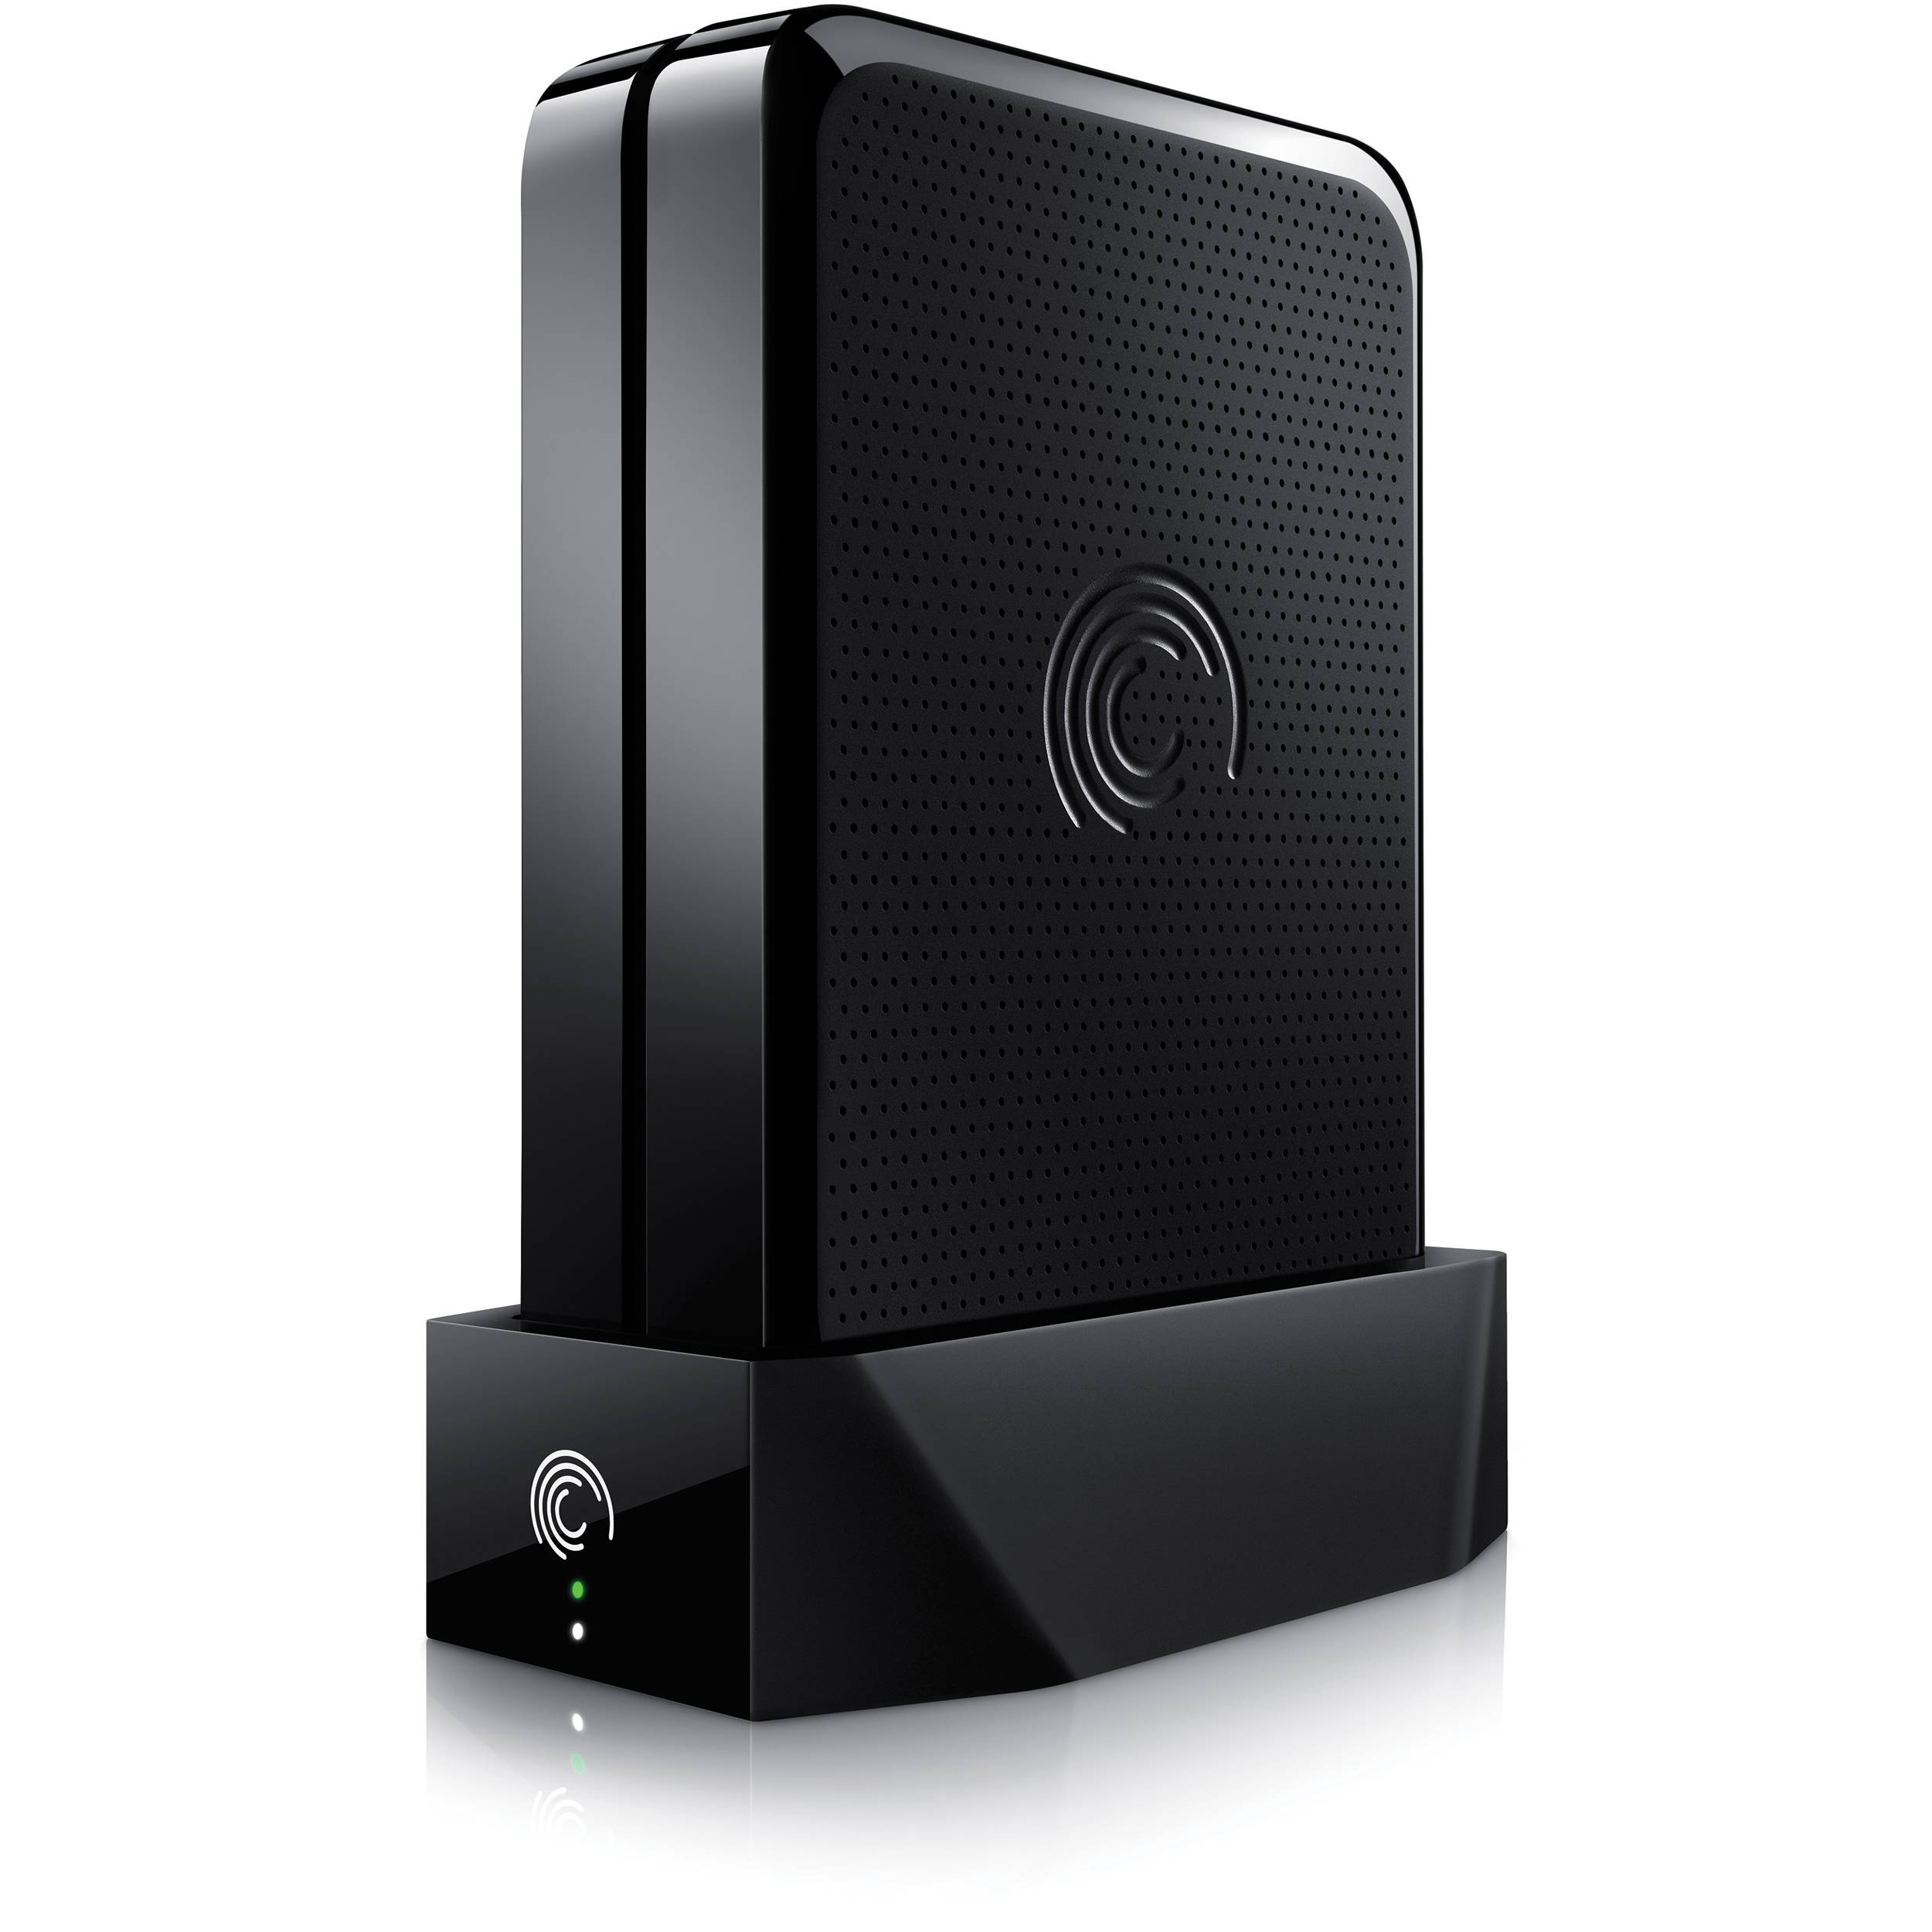 Seagate 3tb Freeagent Goflex Home Network Storage Stam3000100